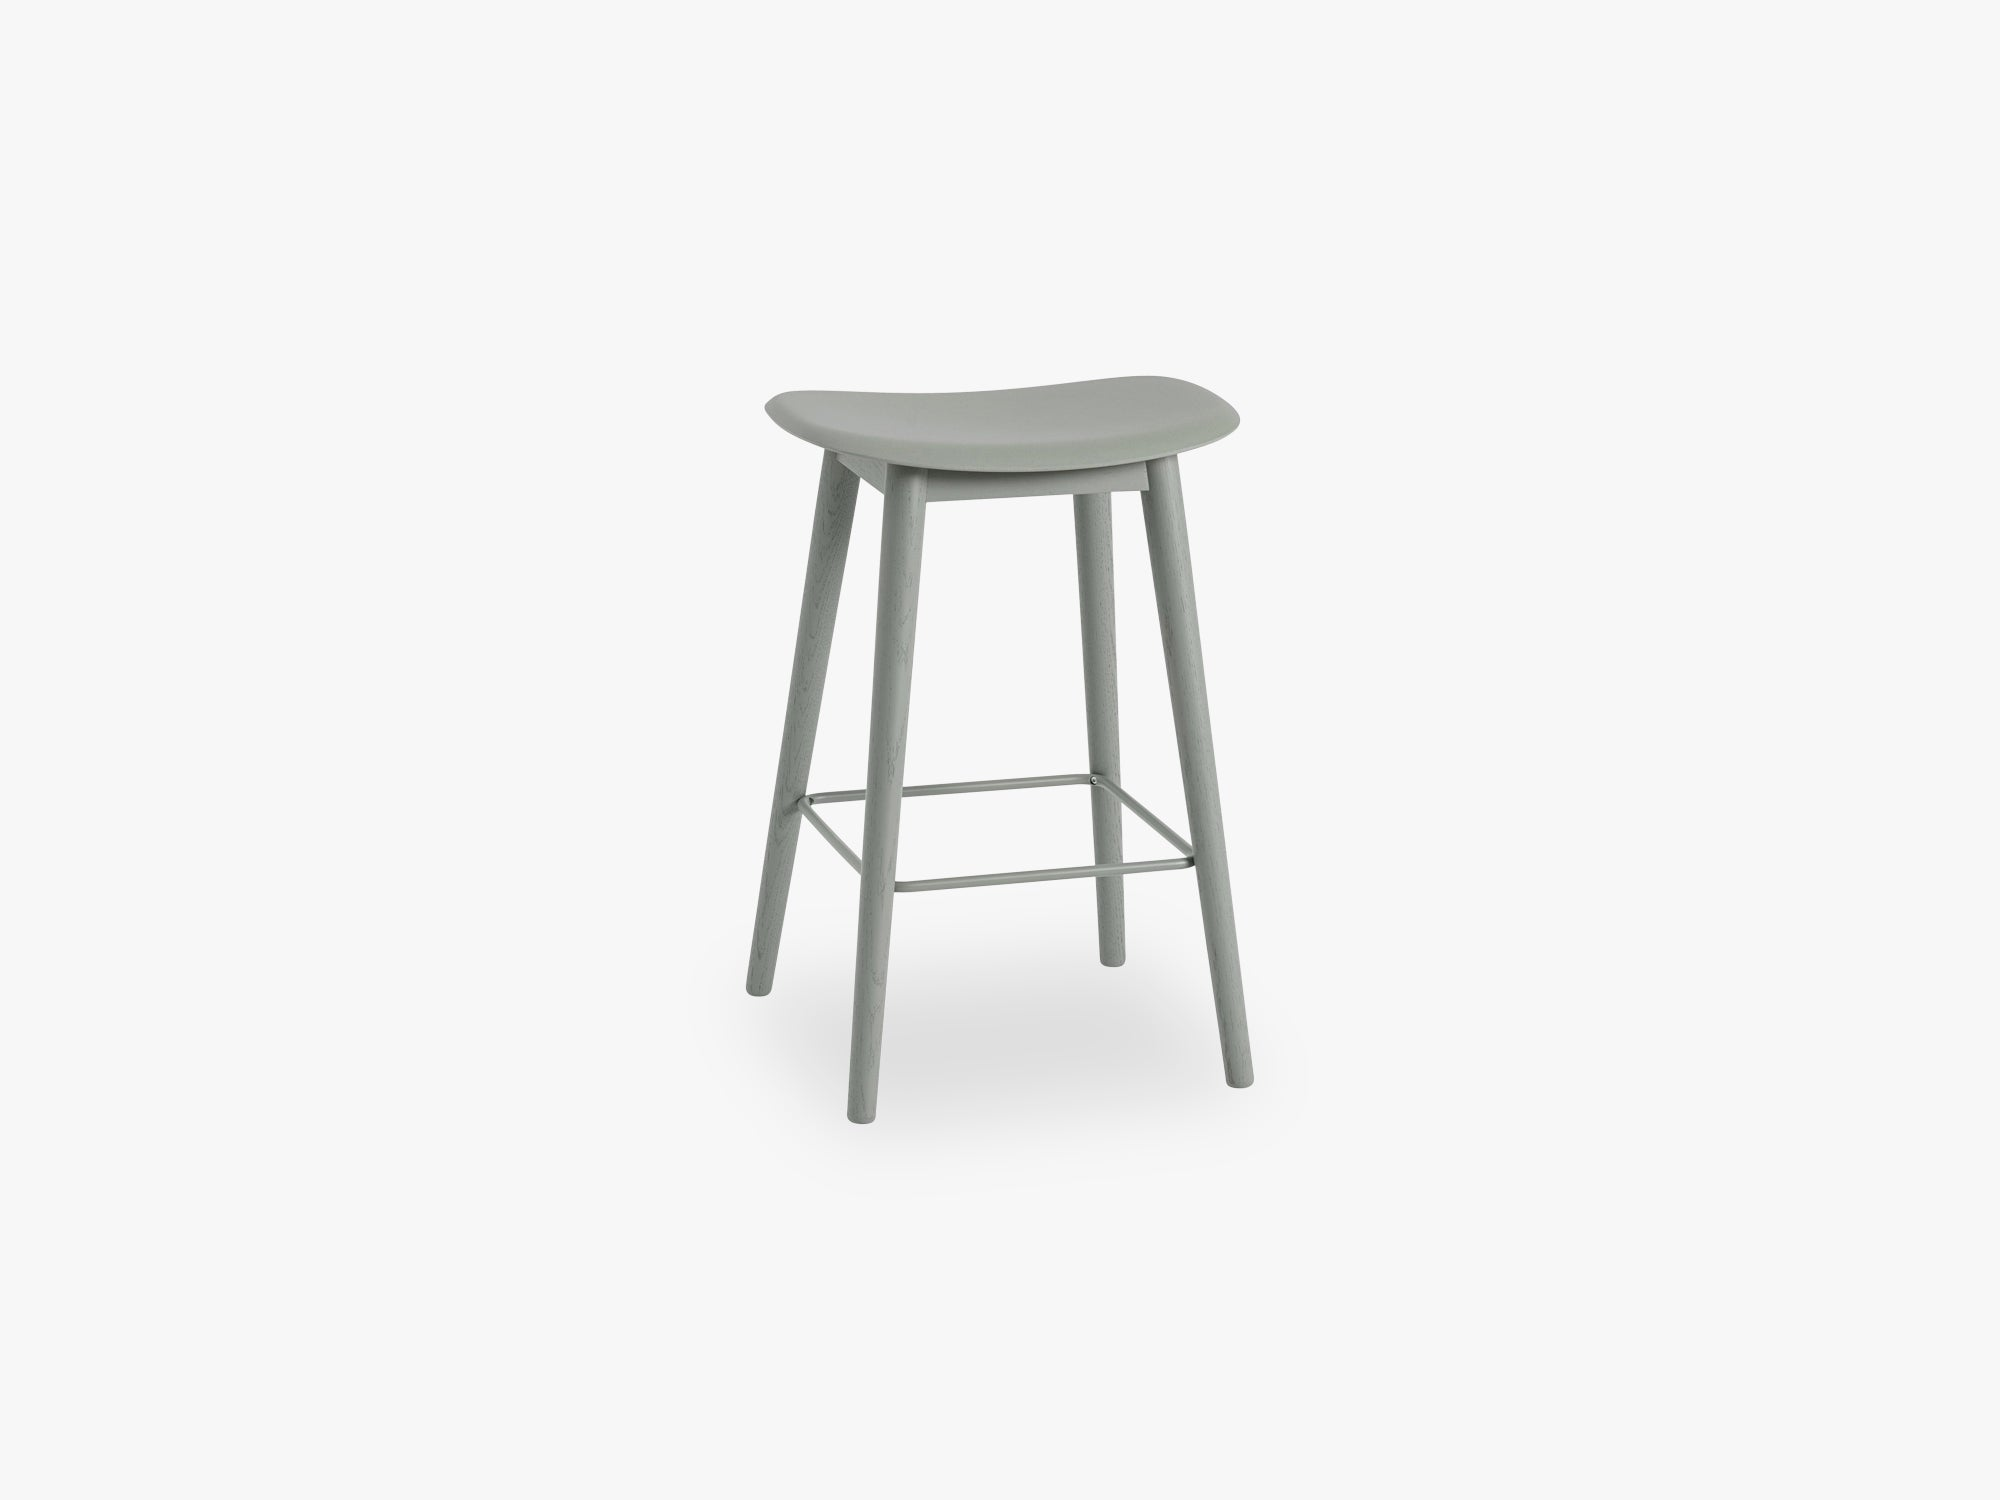 Fiber Bar Stool - Wood Base H: 65 Cm, Dusty Green/Dusty Green fra Muuto